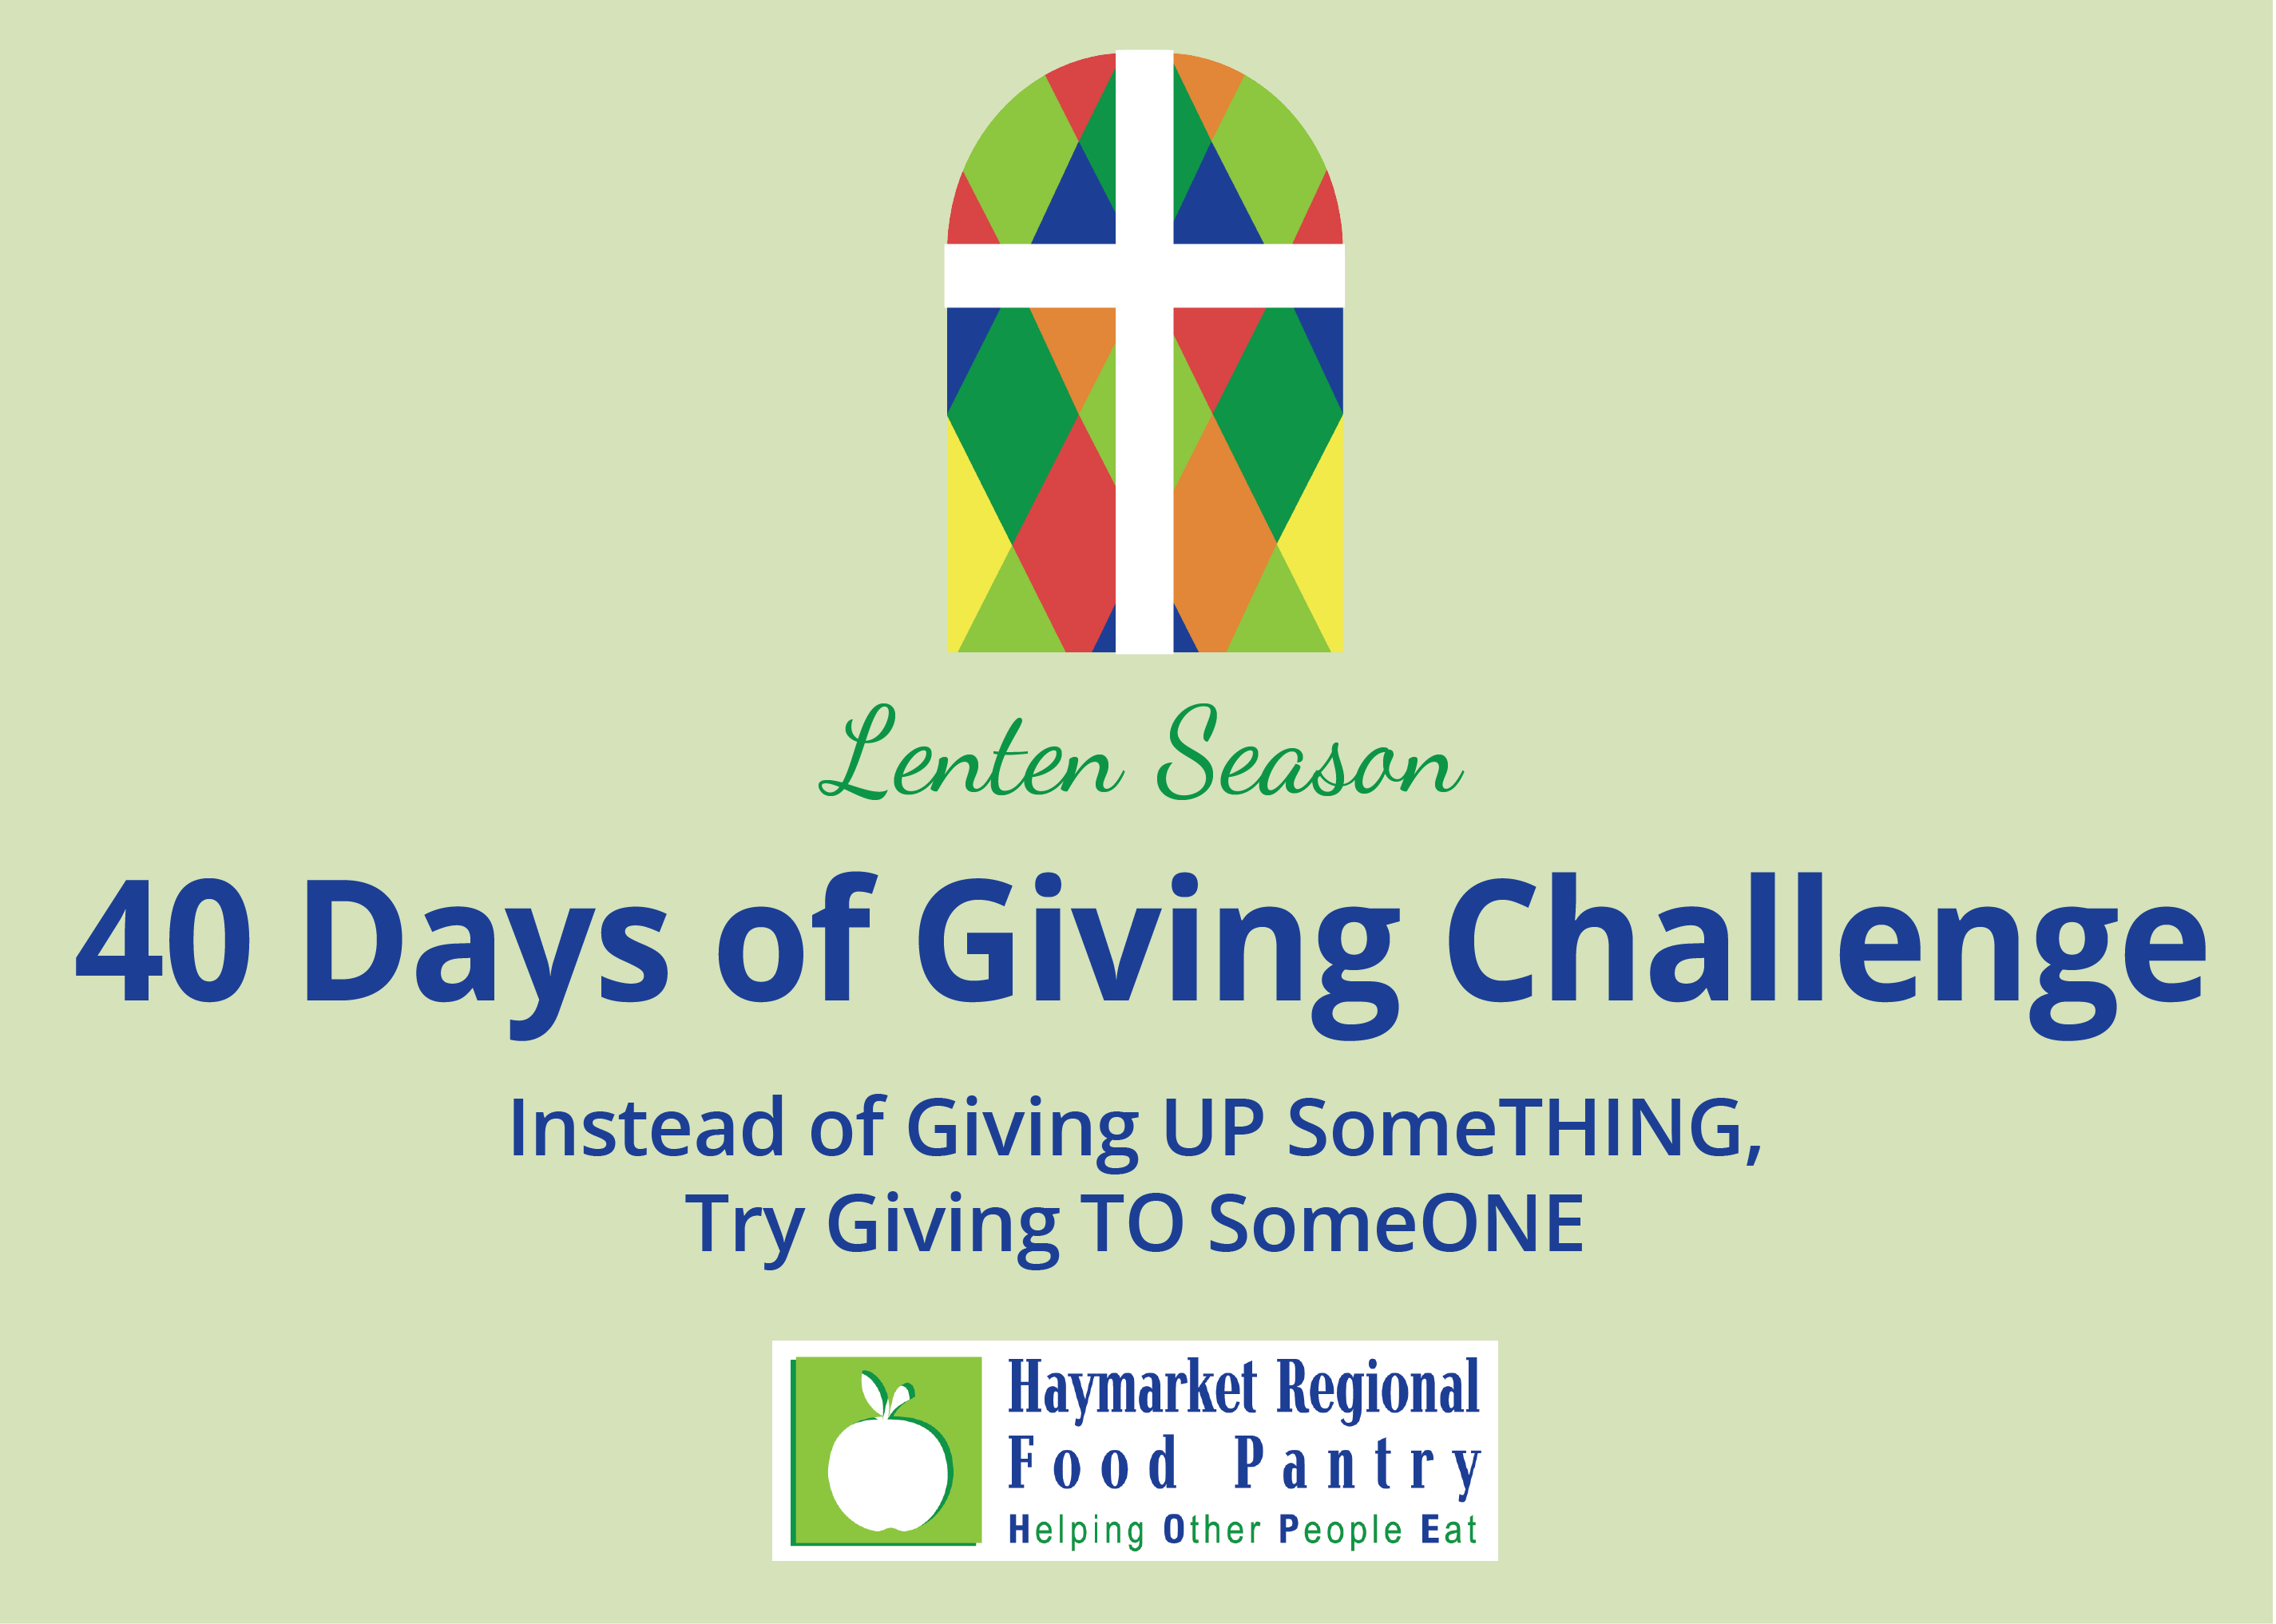 40 Days of Giving Challenge